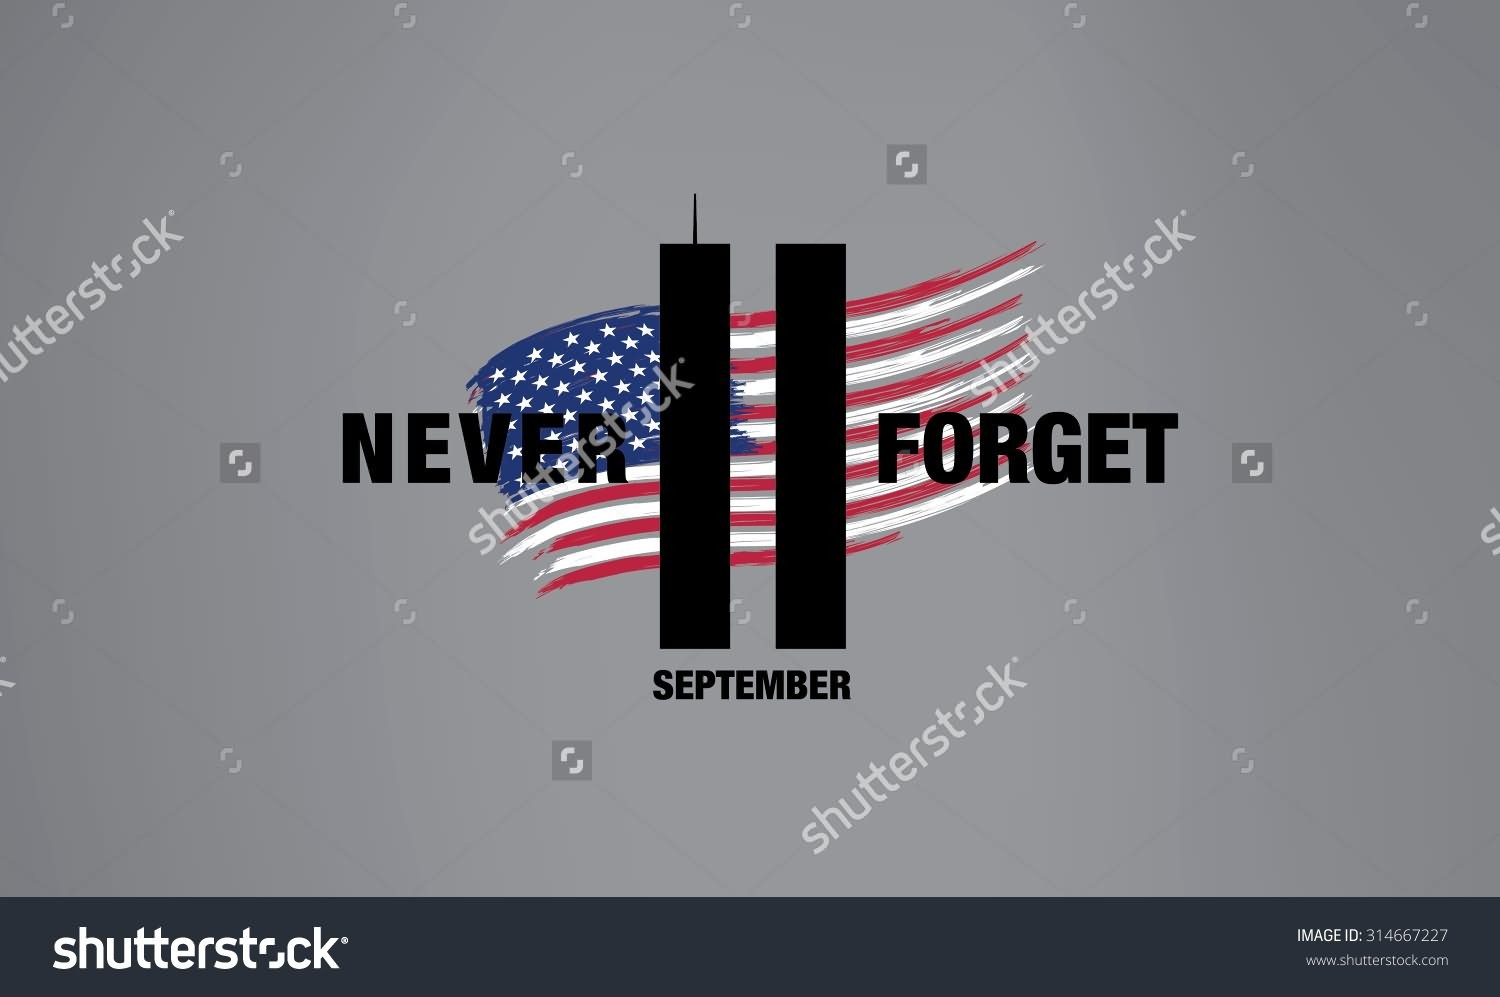 Never Forget 11 September Patriot Day Picture